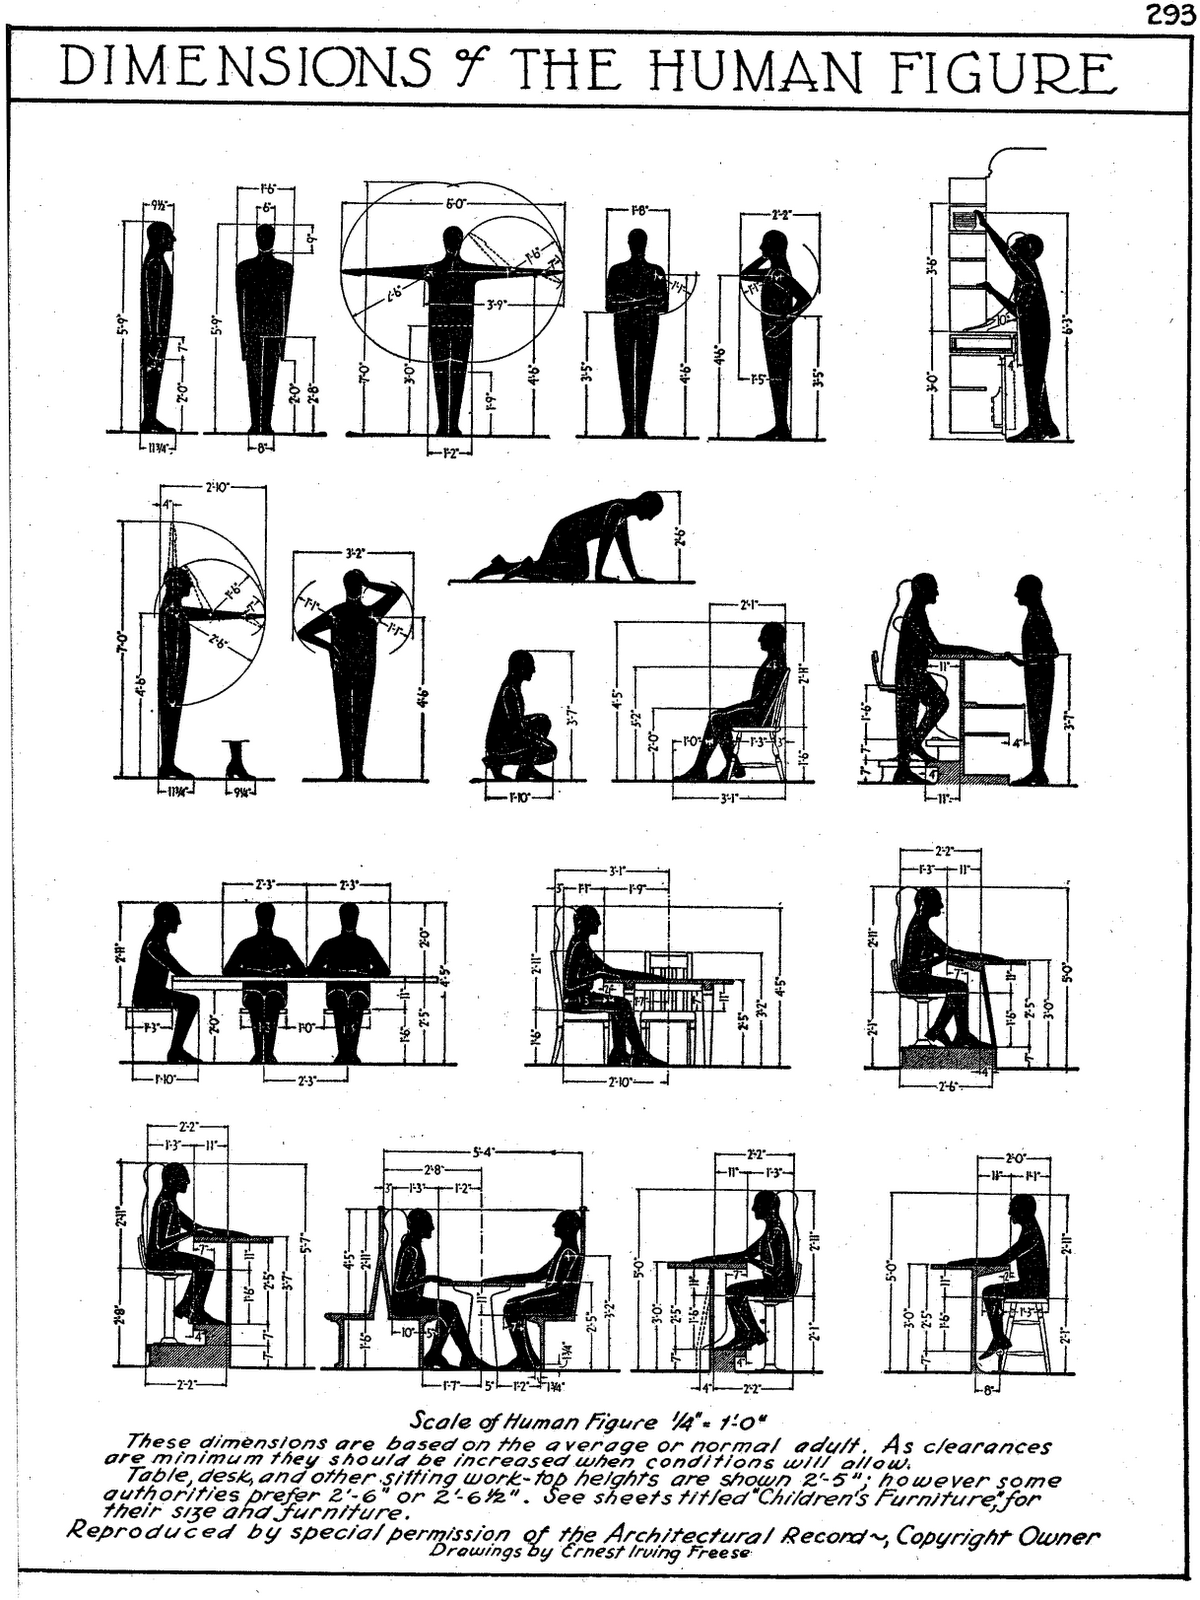 Architectural Drawing Human Figure human measurements, dimensions for the human figure. (workstation